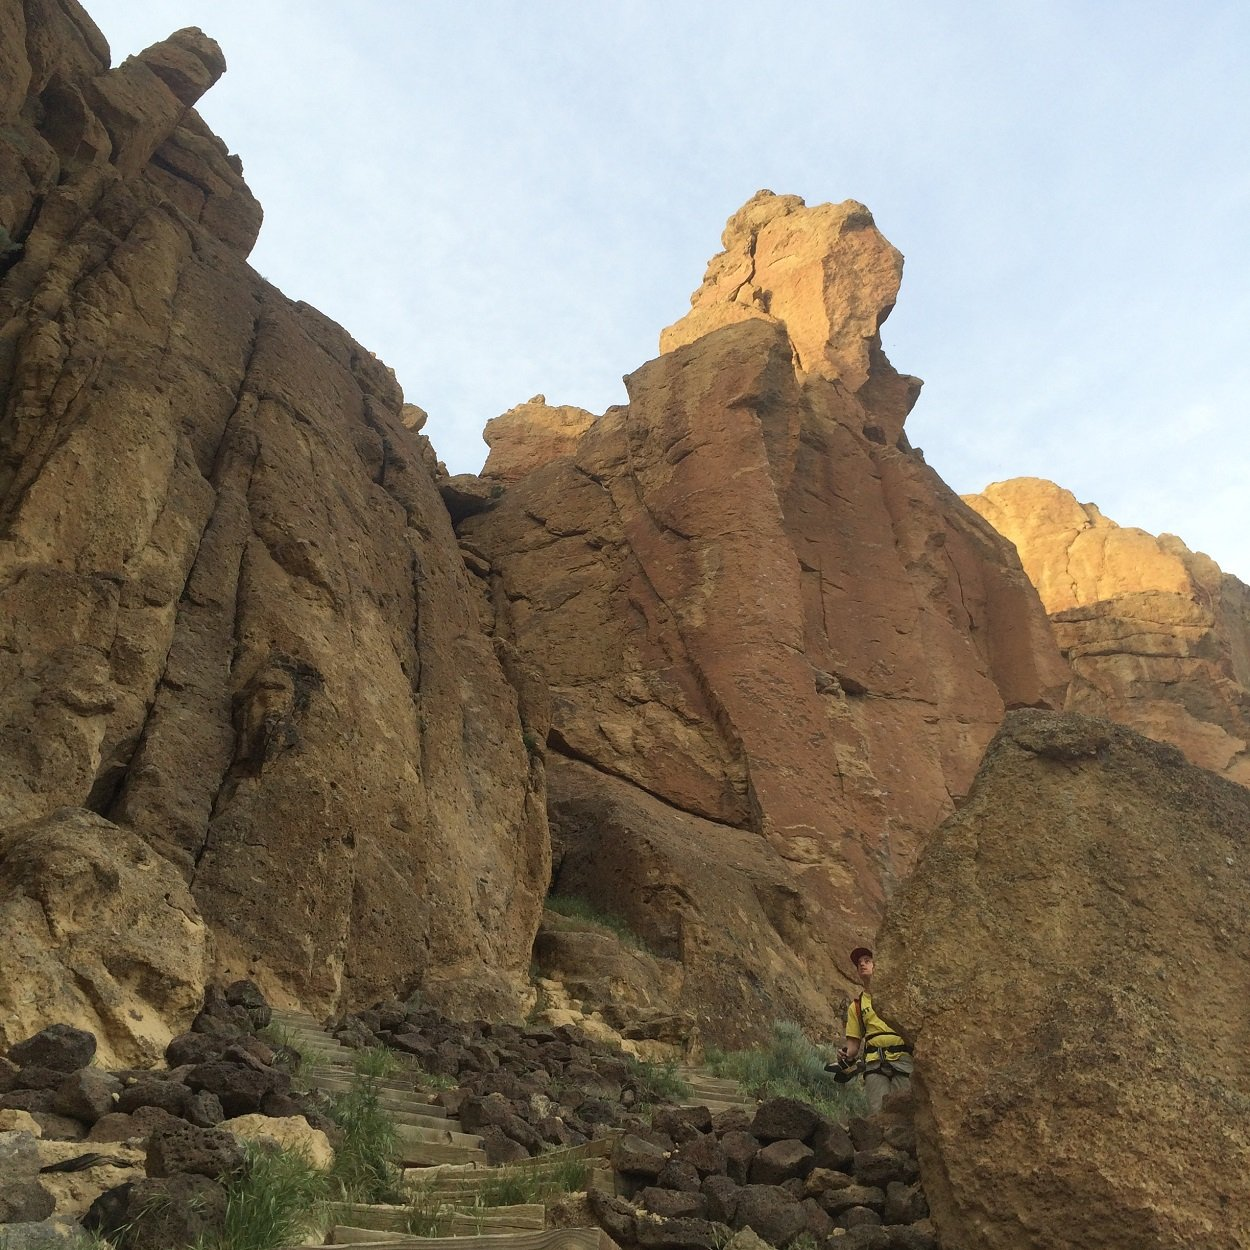 Fourth Horseman - Smith Rock Climbing